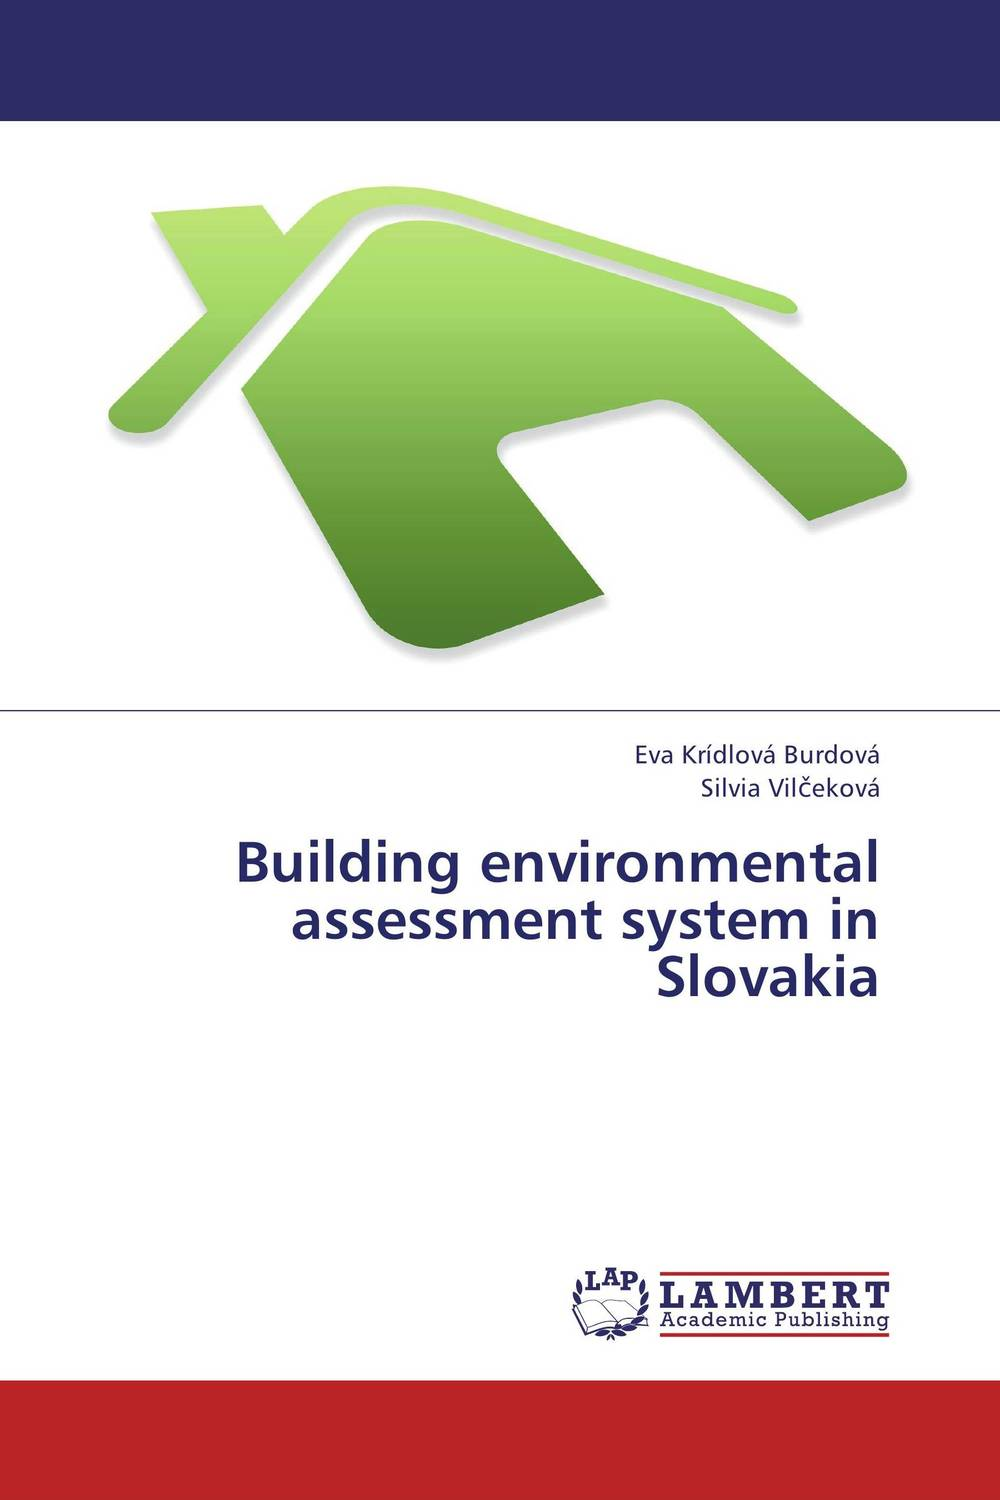 купить Building environmental assessment system in Slovakia недорого